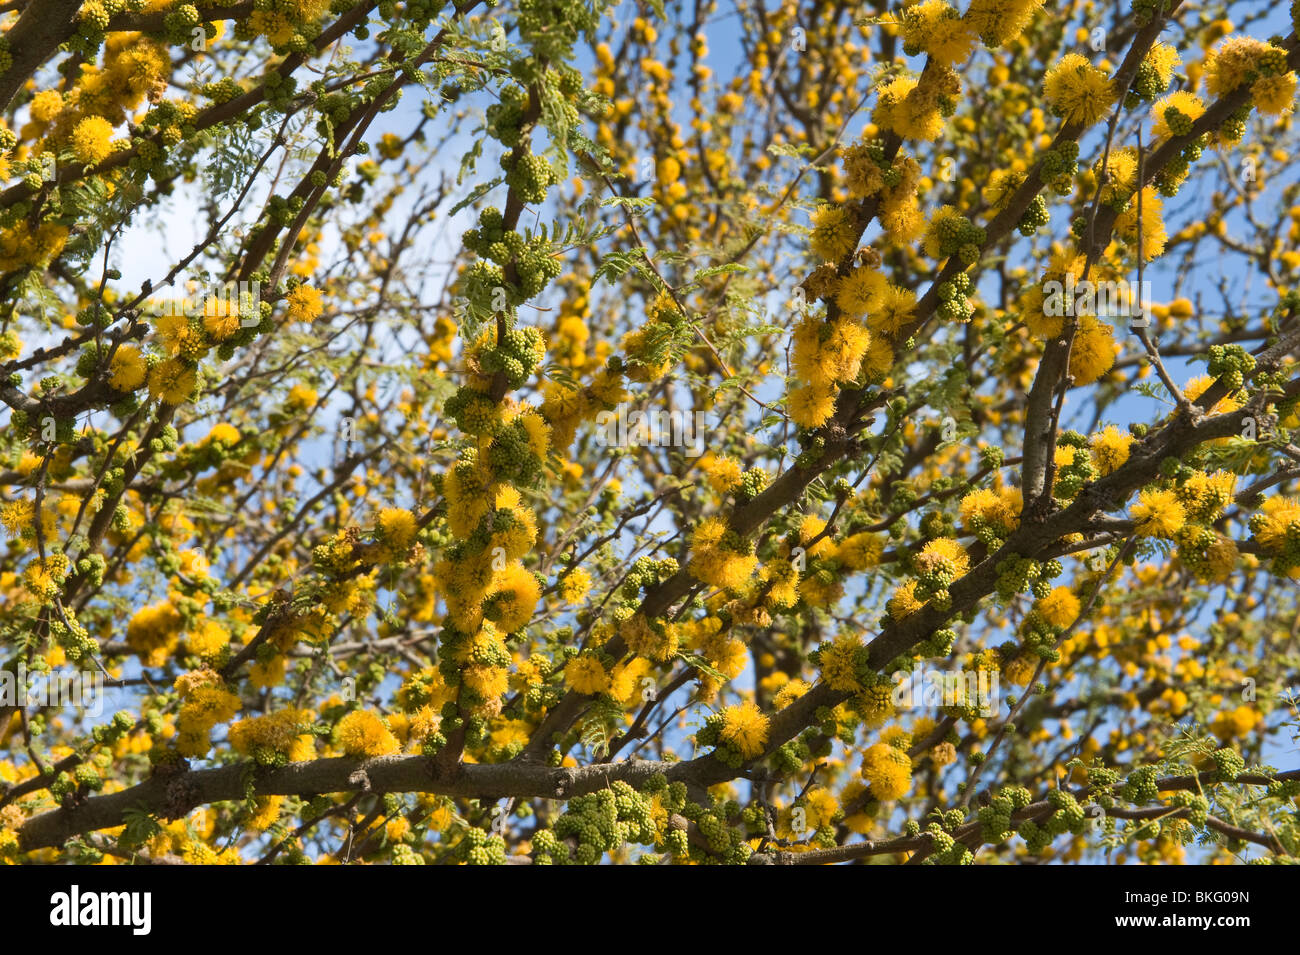 Flowering tree with yellow flowers spring barcelona spain europe flowering tree with yellow flowers spring barcelona spain europe april mightylinksfo